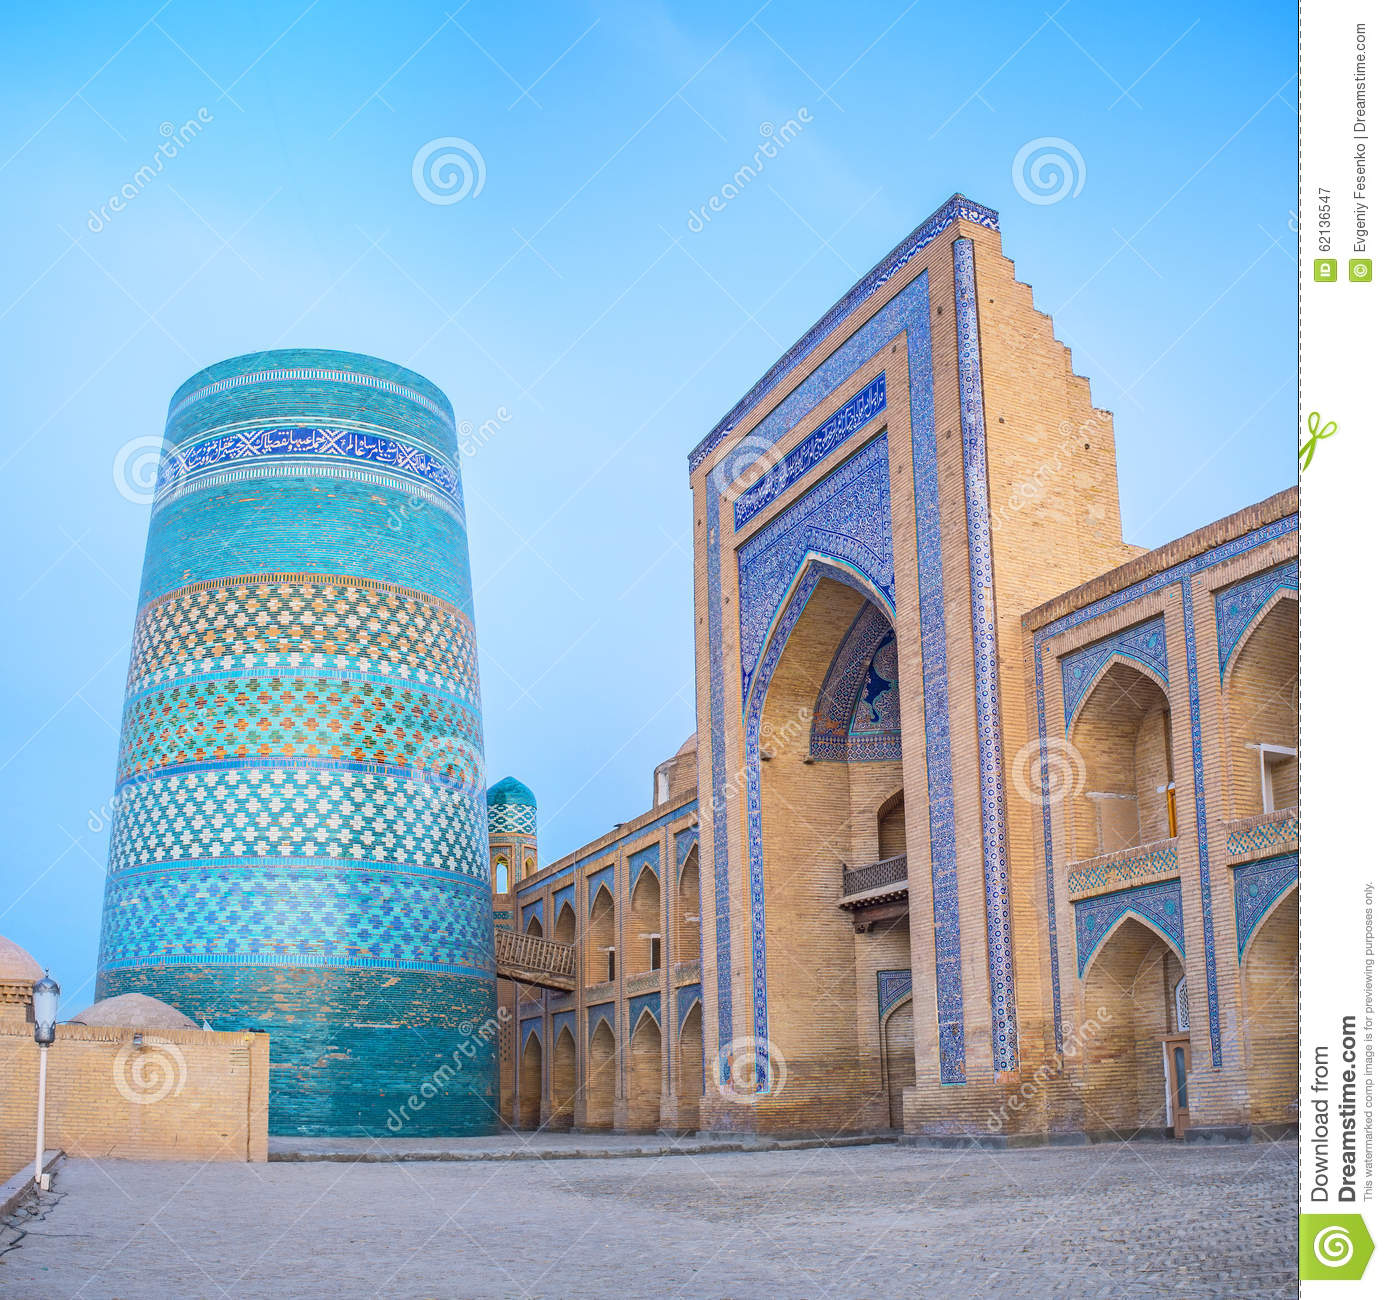 The Blue Minaret Stock Photo.